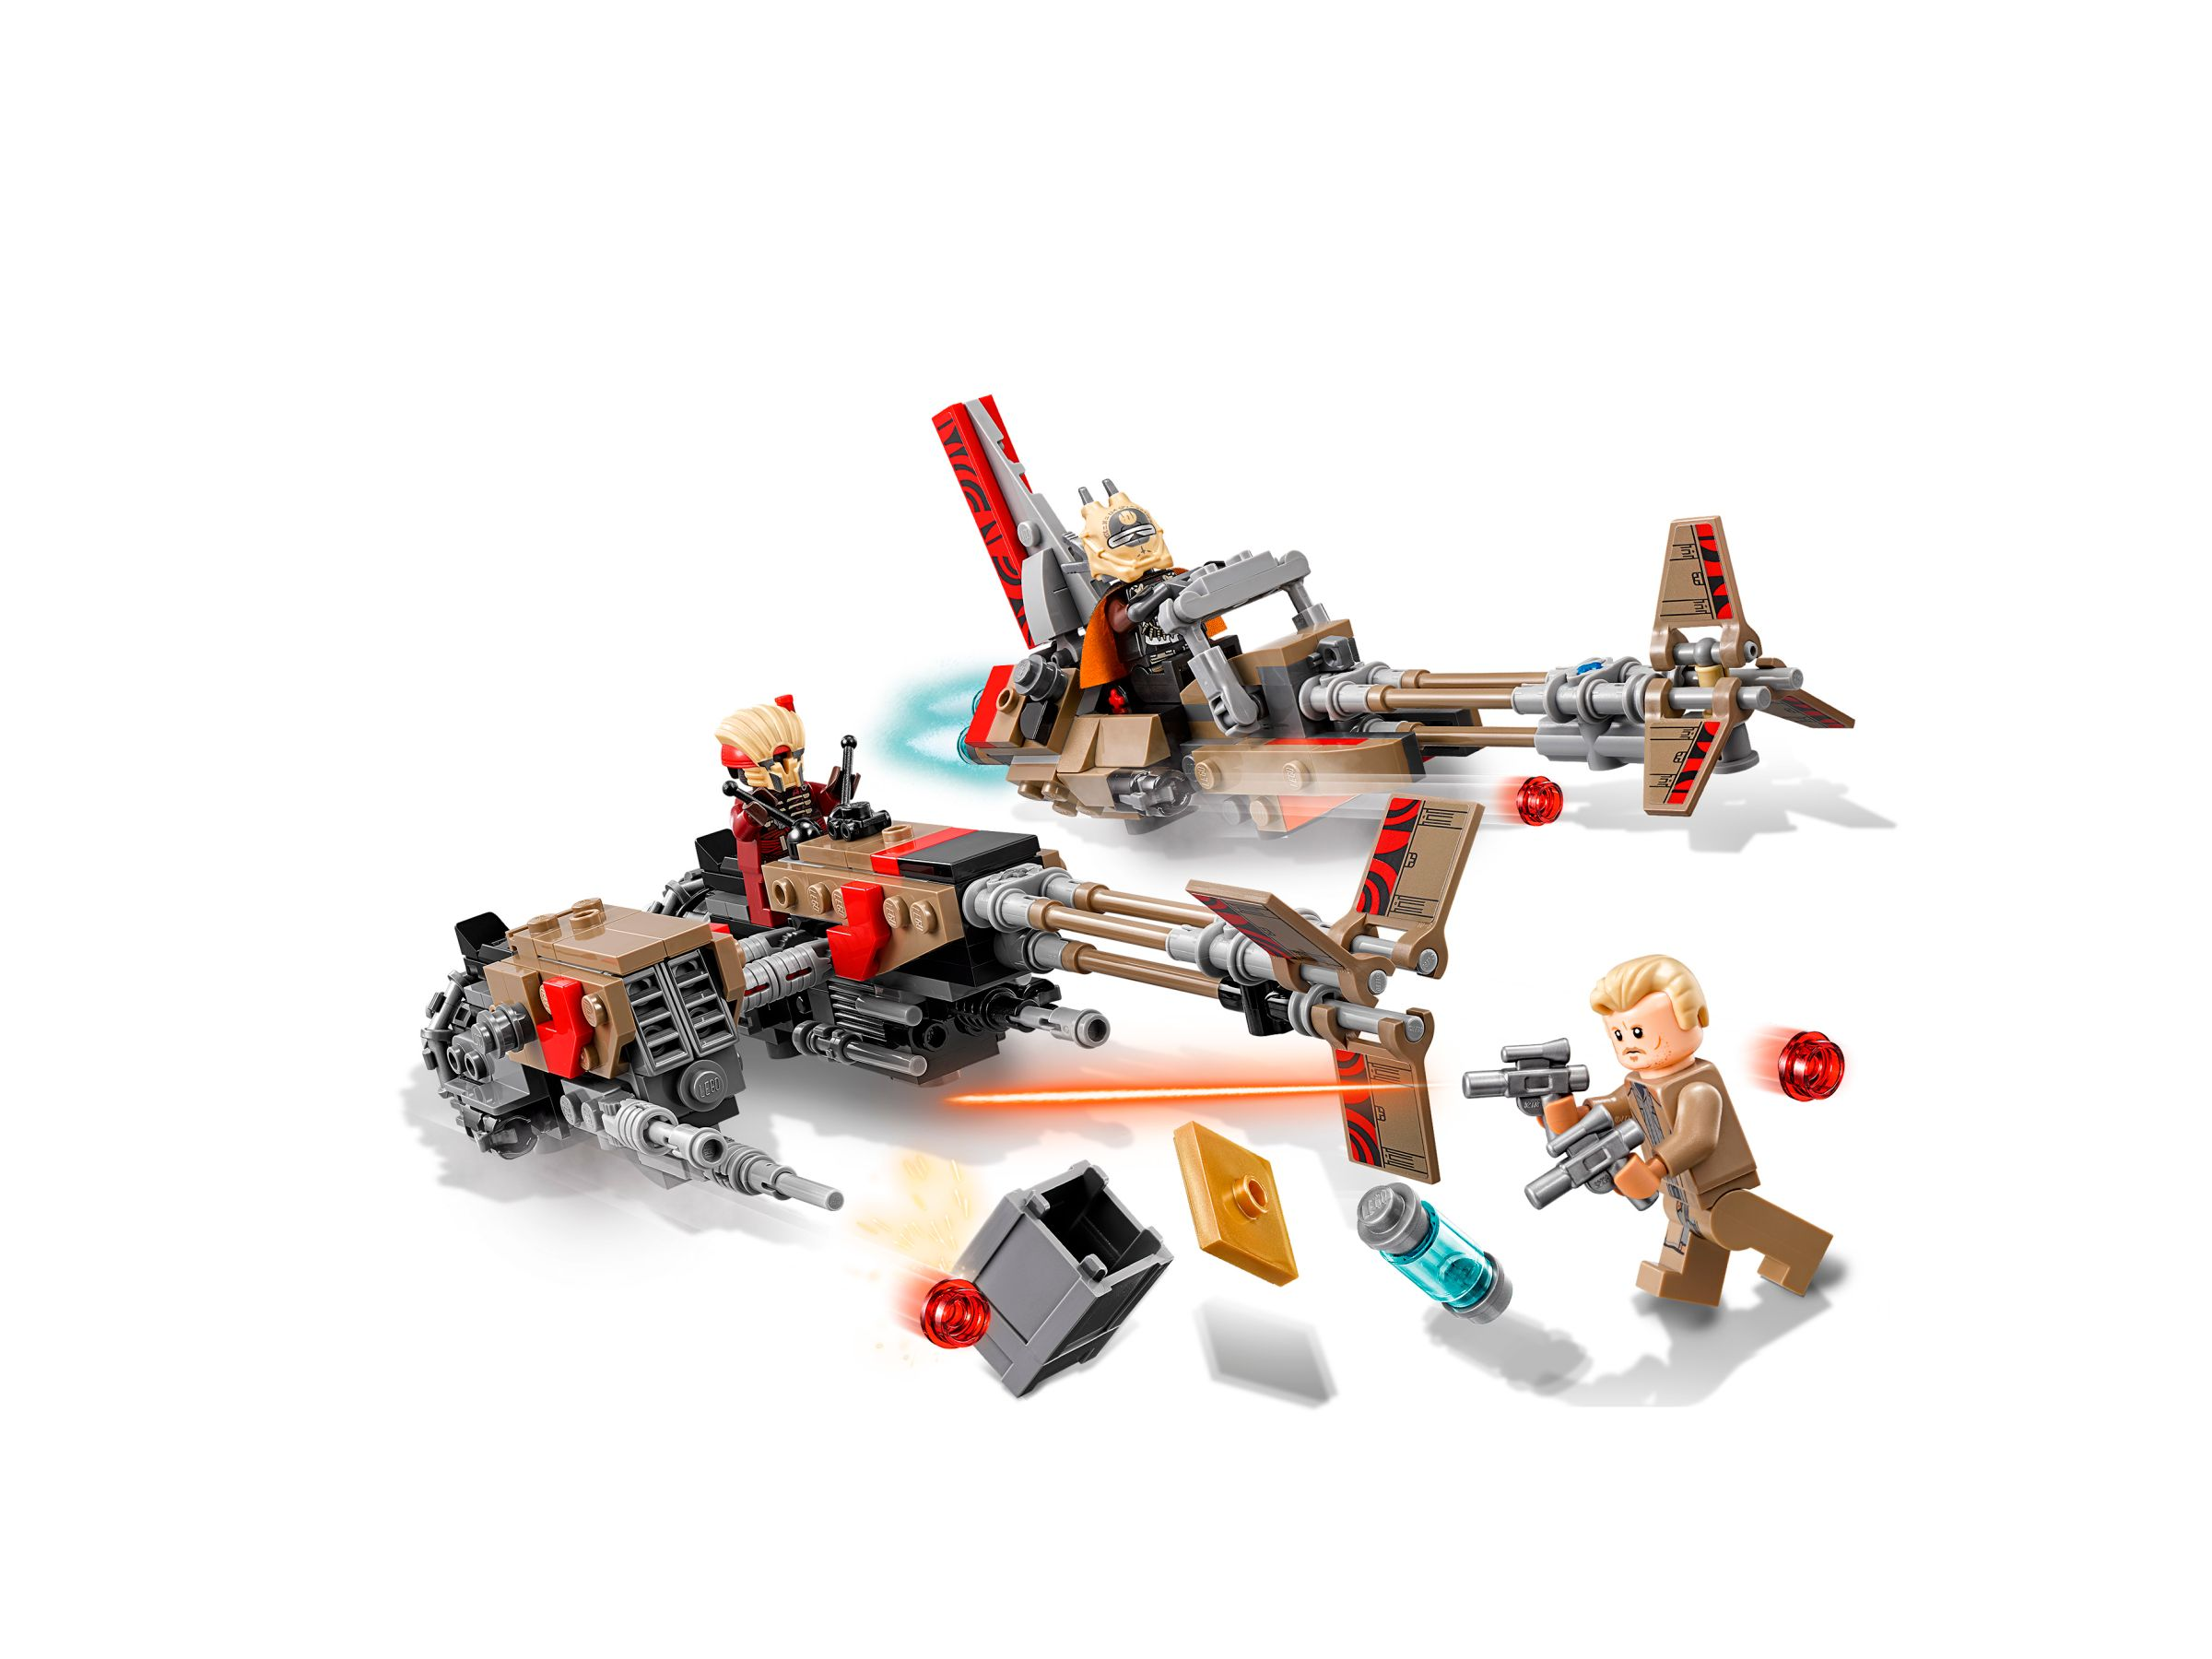 LEGO Star Wars 75215 Cloud-Rider Swoop Bikes™ LEGO_75215_alt2.jpg